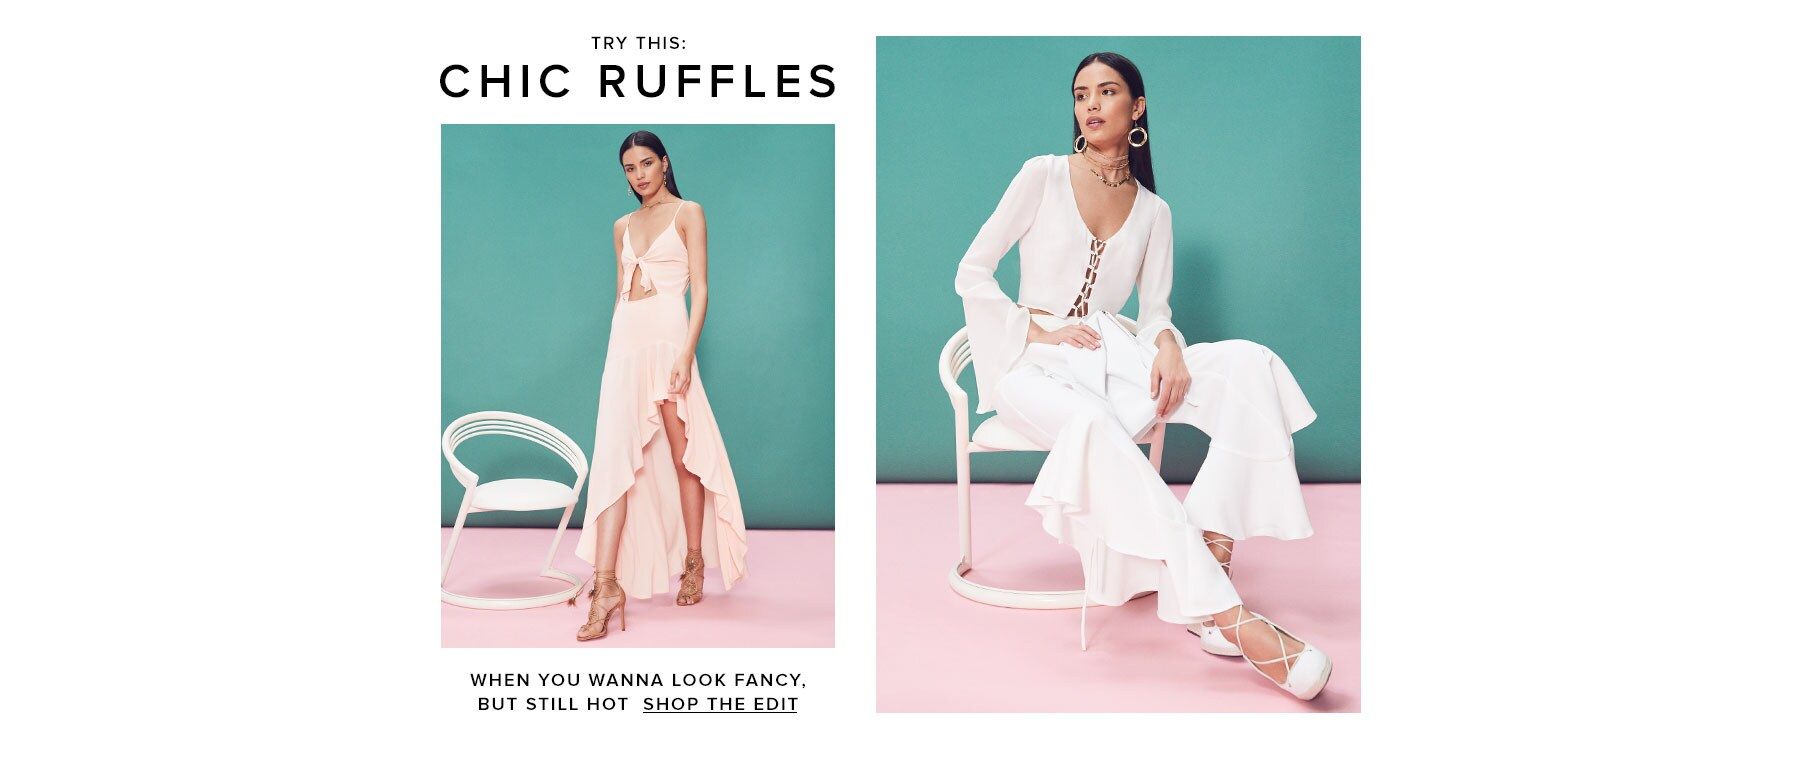 Try this: Chic ruffles. Shop the edit